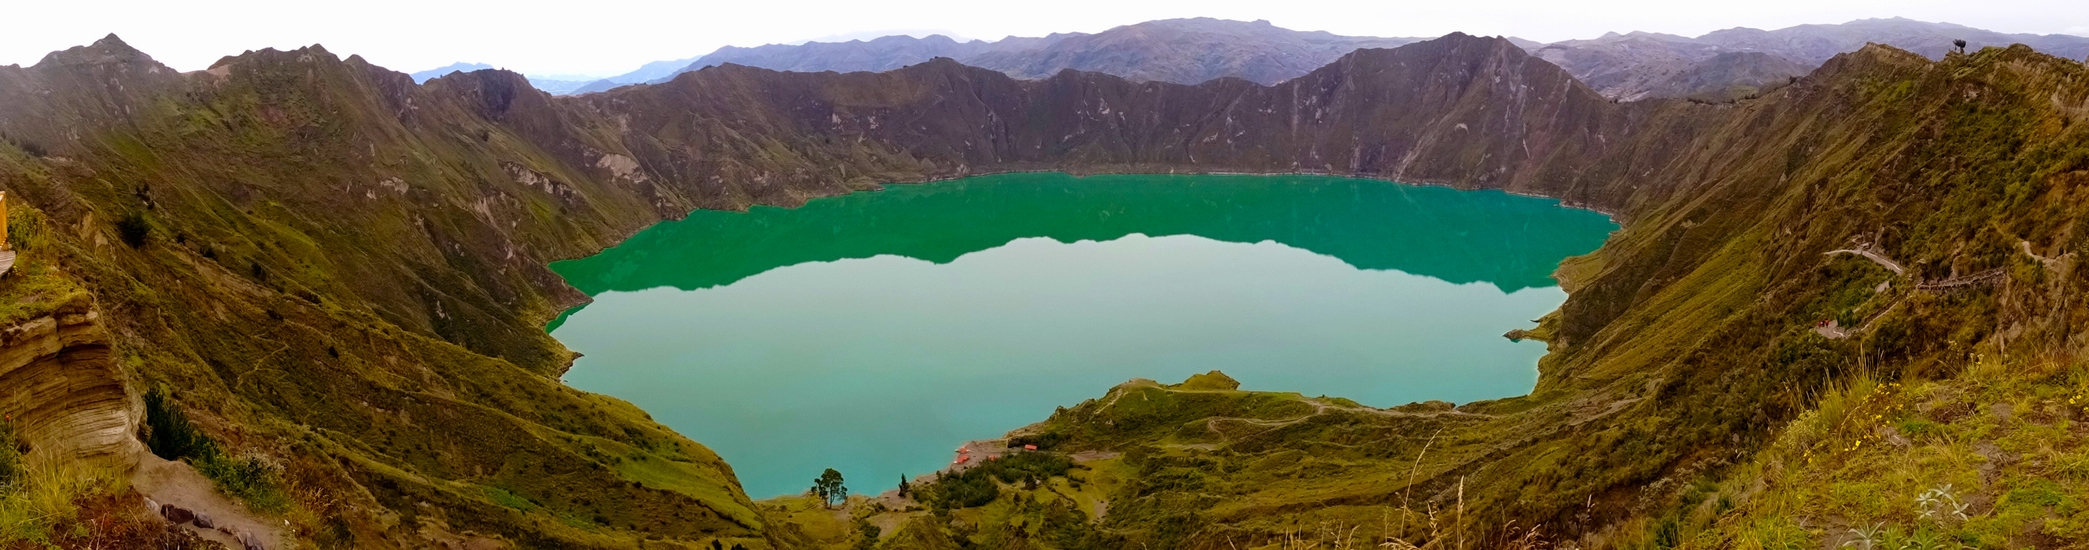 We may be stuck due to a package but we're not forced to stay in the same place. This is Quilatoa Lake high in the Andes of Ecuador.